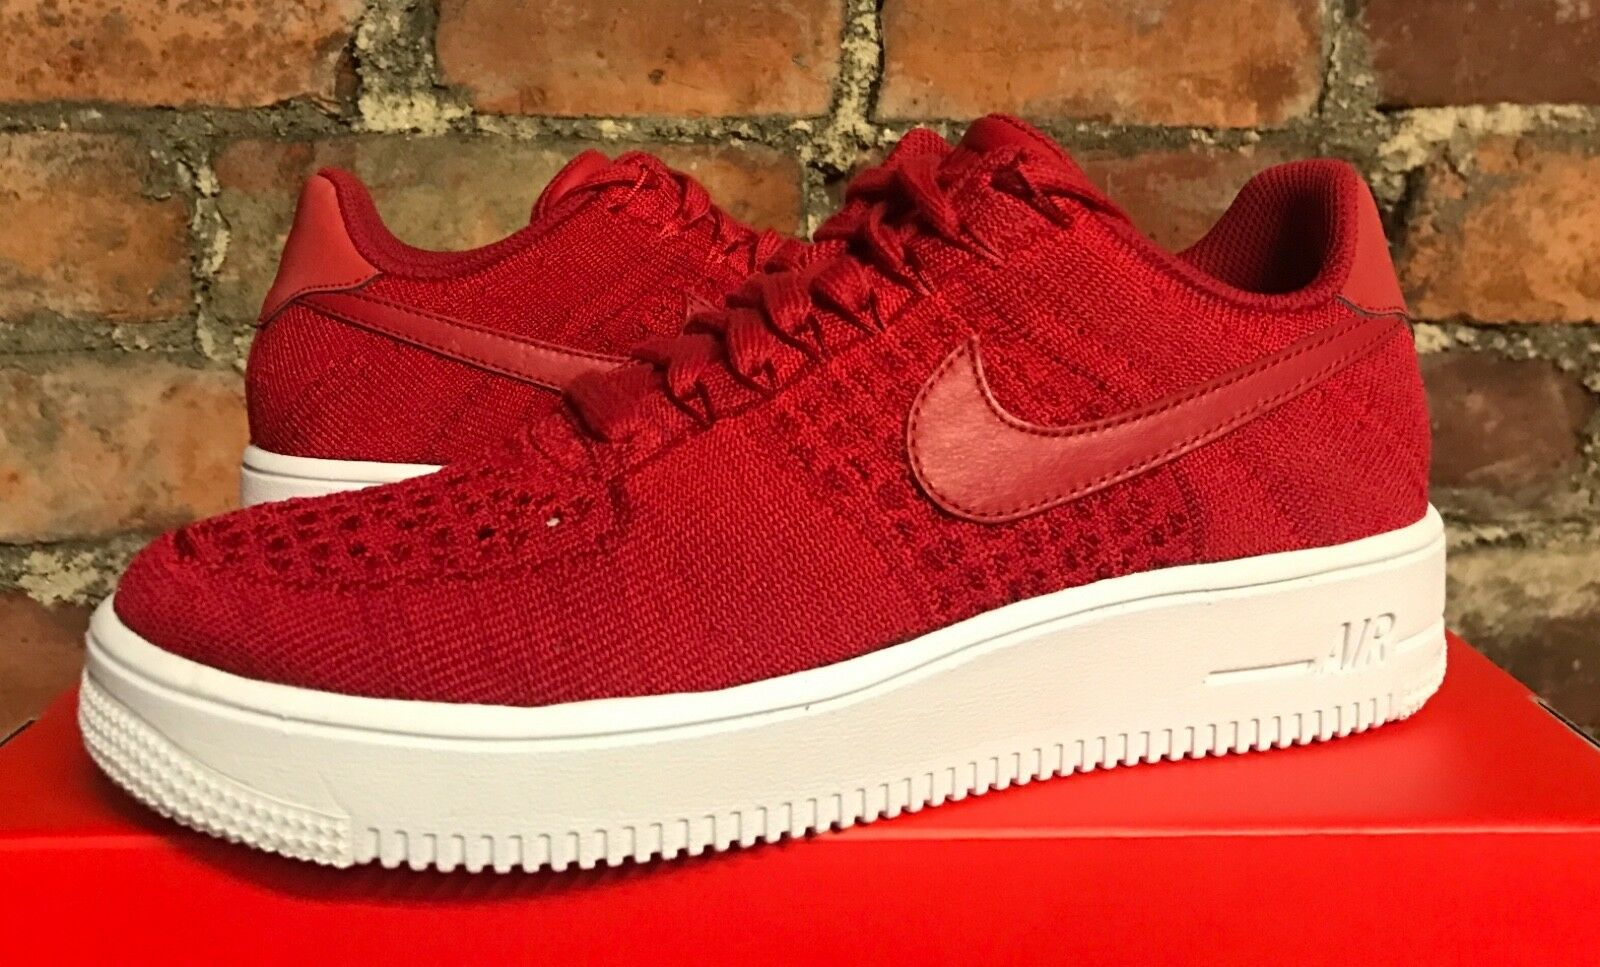 NIKE AIR FORCE 1 ULTRA FLYKNIT LOW PRM GYM RED WHITE UK10 US11 EU45 826577 600